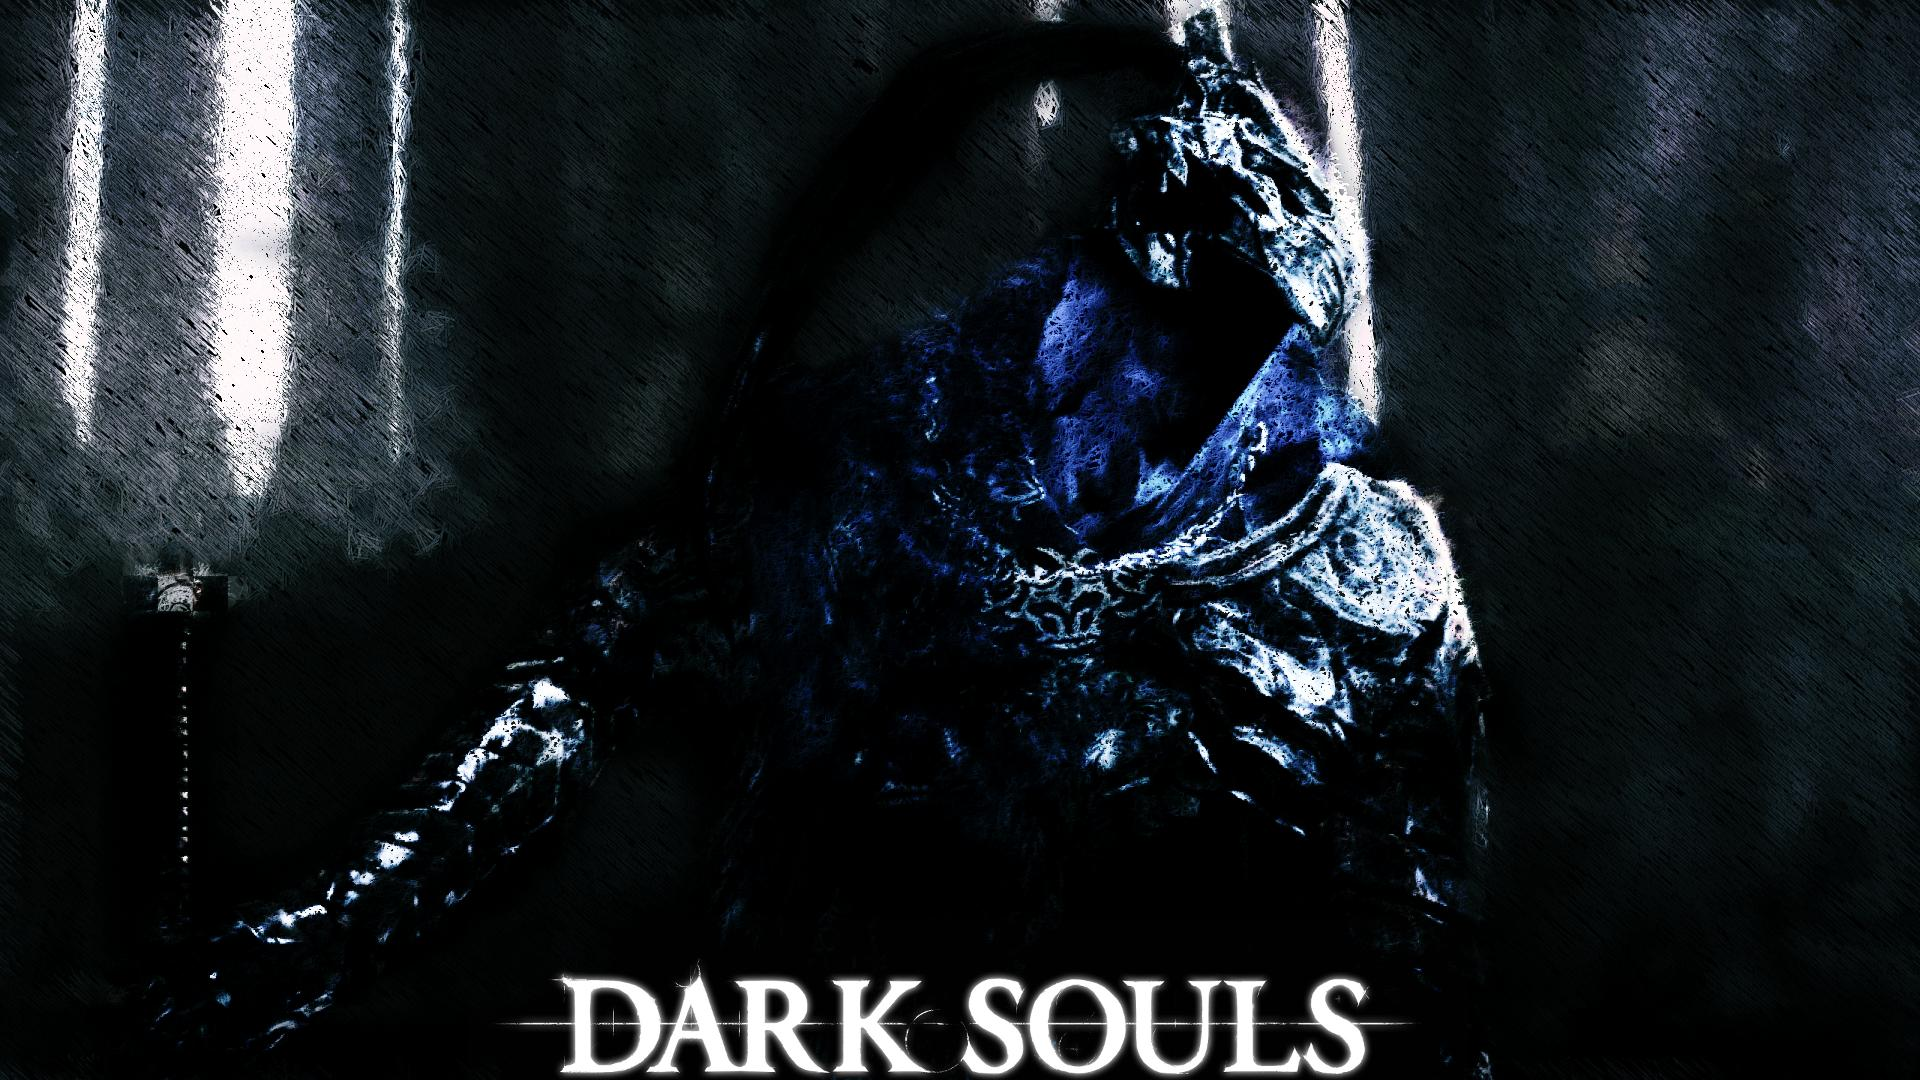 image - free-dark-souls-games-wallpaper | dark souls wiki